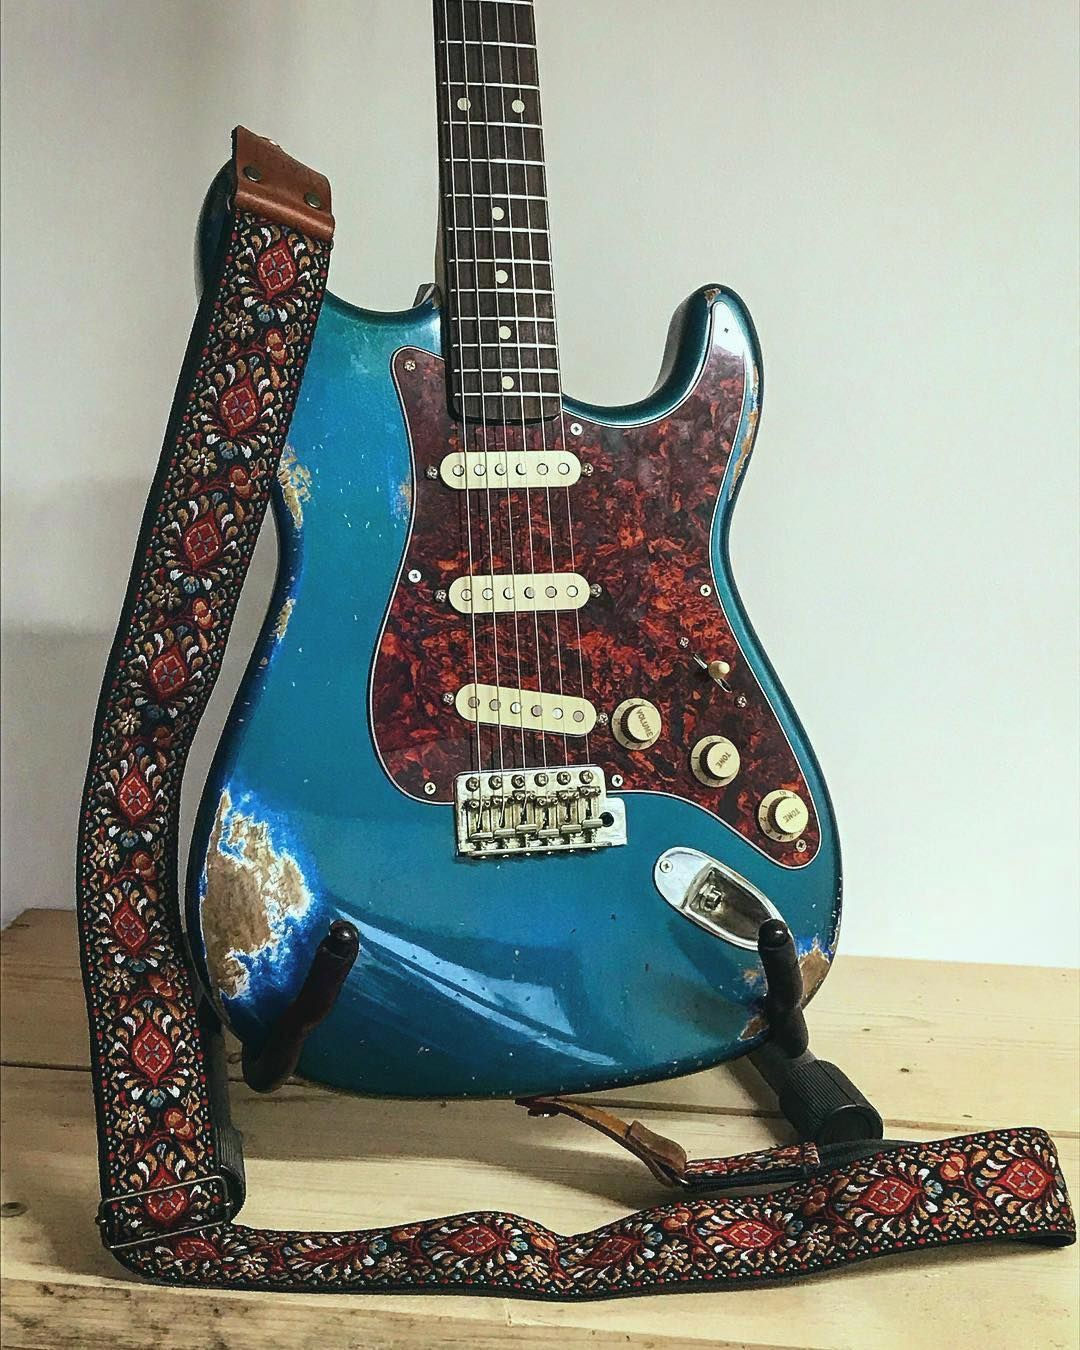 52 99 Vintage Guitar Strap Handcrafted In The Uk Screlicsguitars Strat With Our Zephyr Strap Guitar Strap Vintage Guitar Strap Guitar